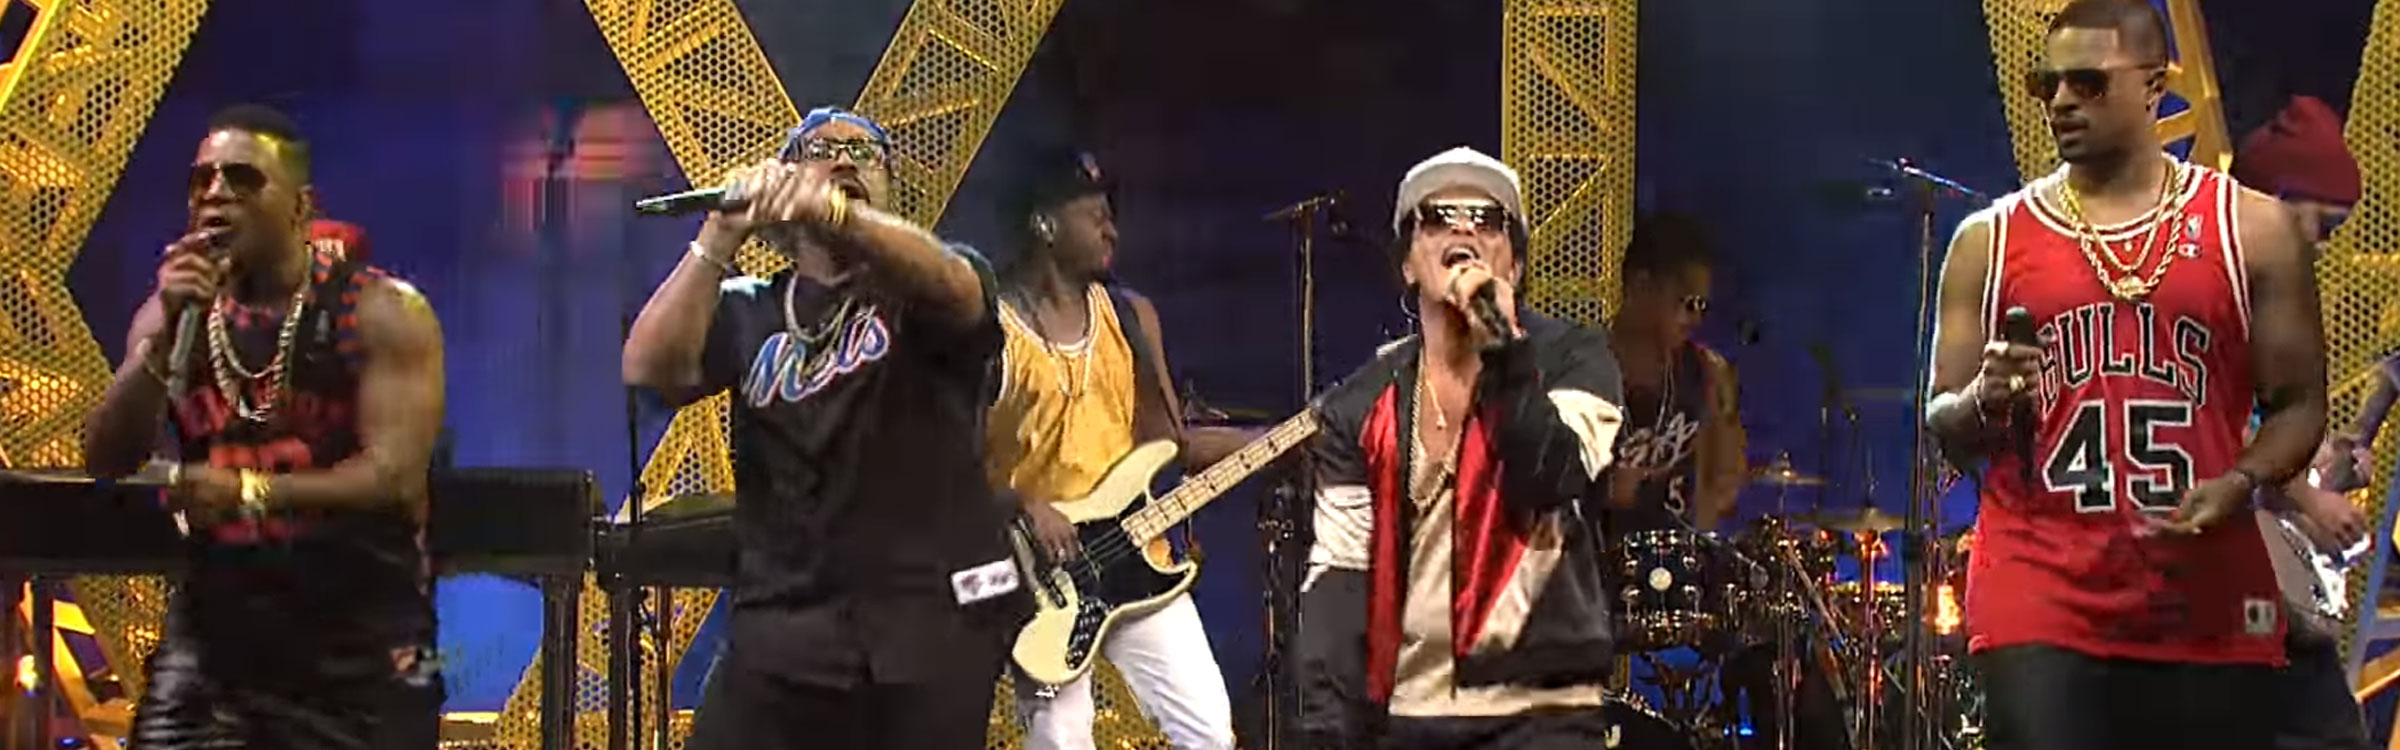 Bruno snl header